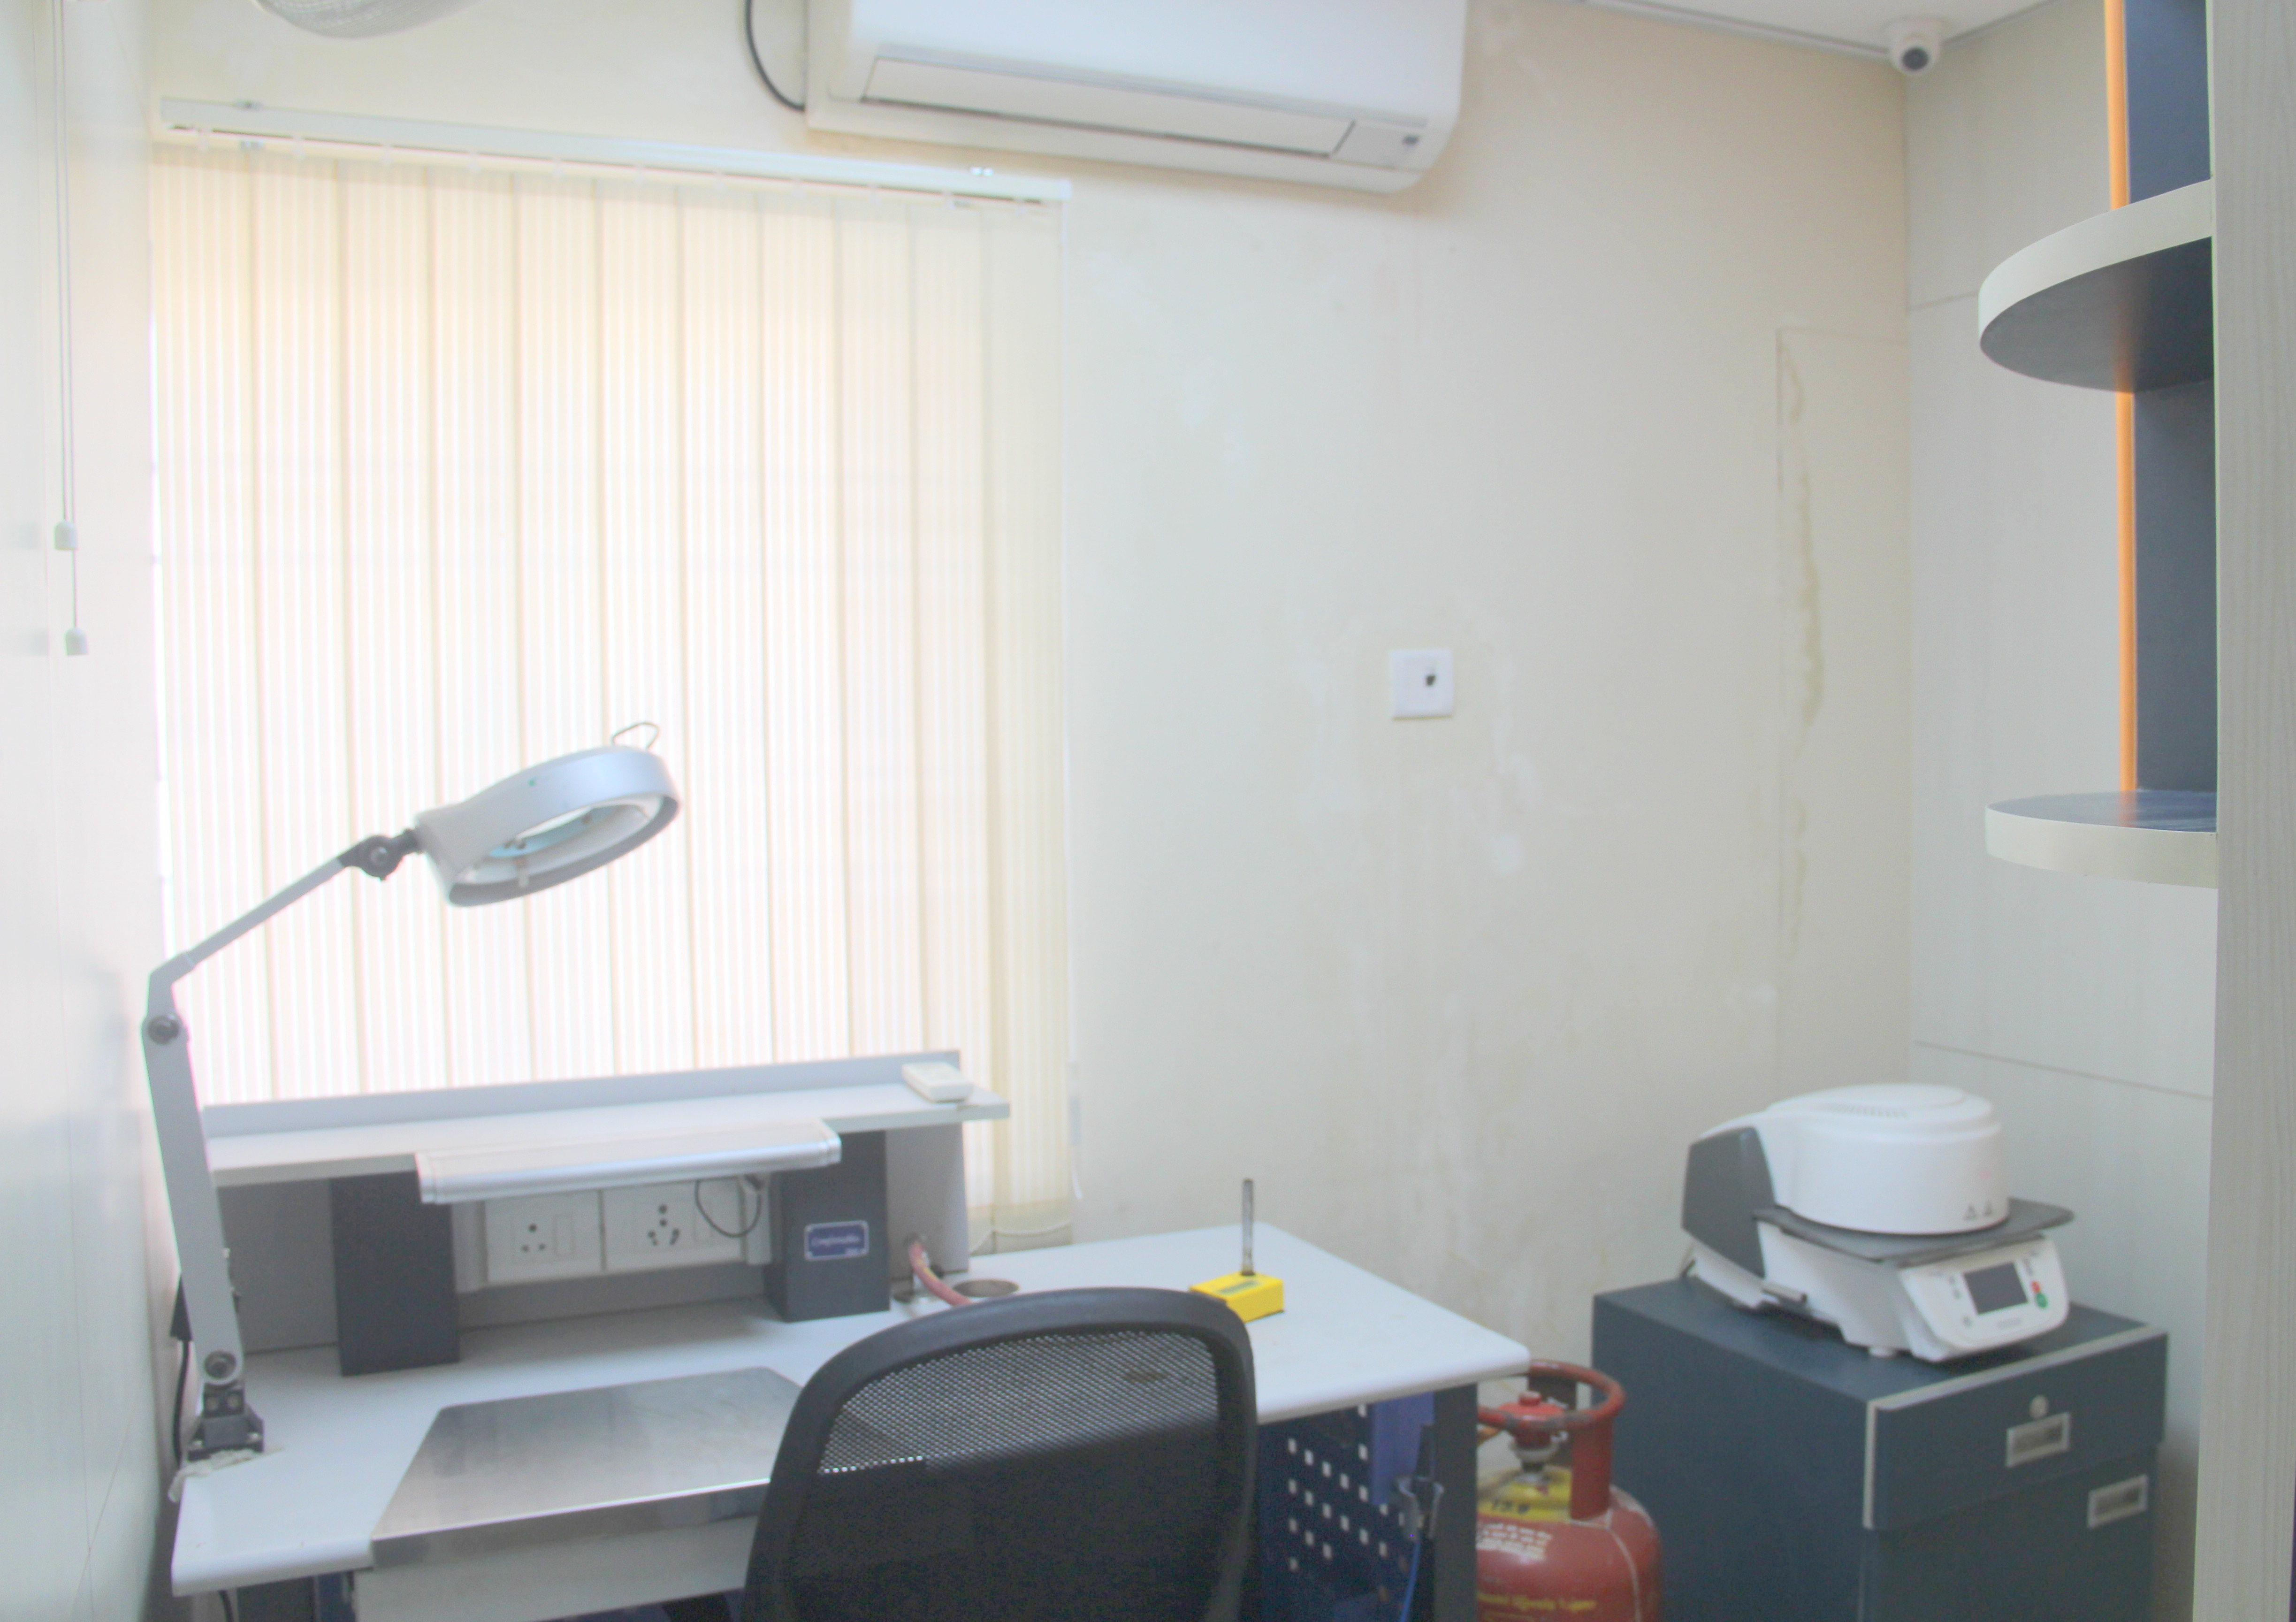 tooth dental implant center in Chennai, India